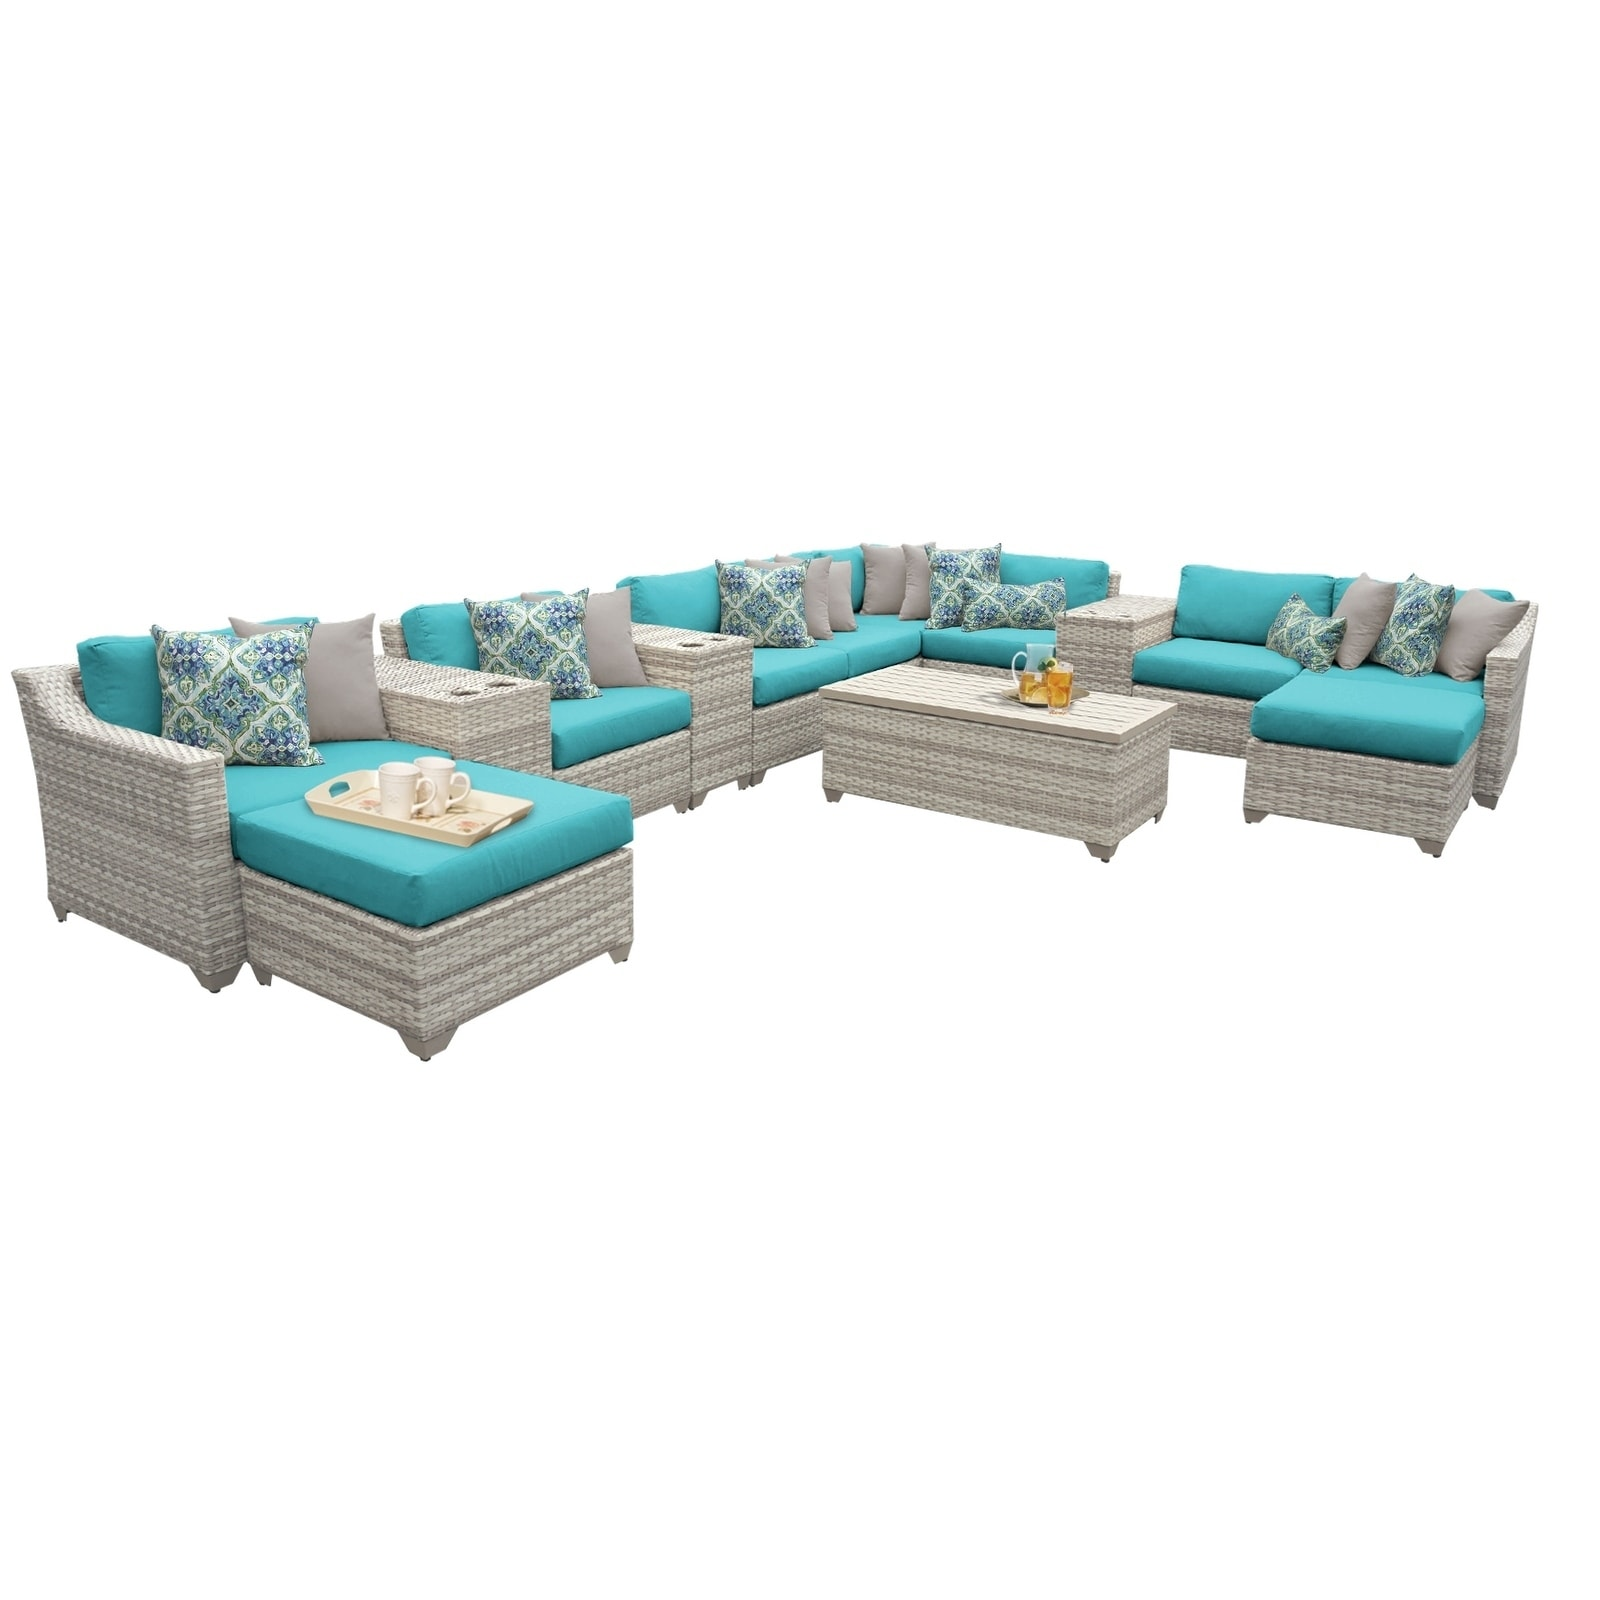 Fairmont Patio Furniture.Details About Fairmont 14 Piece Outdoor Wicker Patio Furniture Set 14a